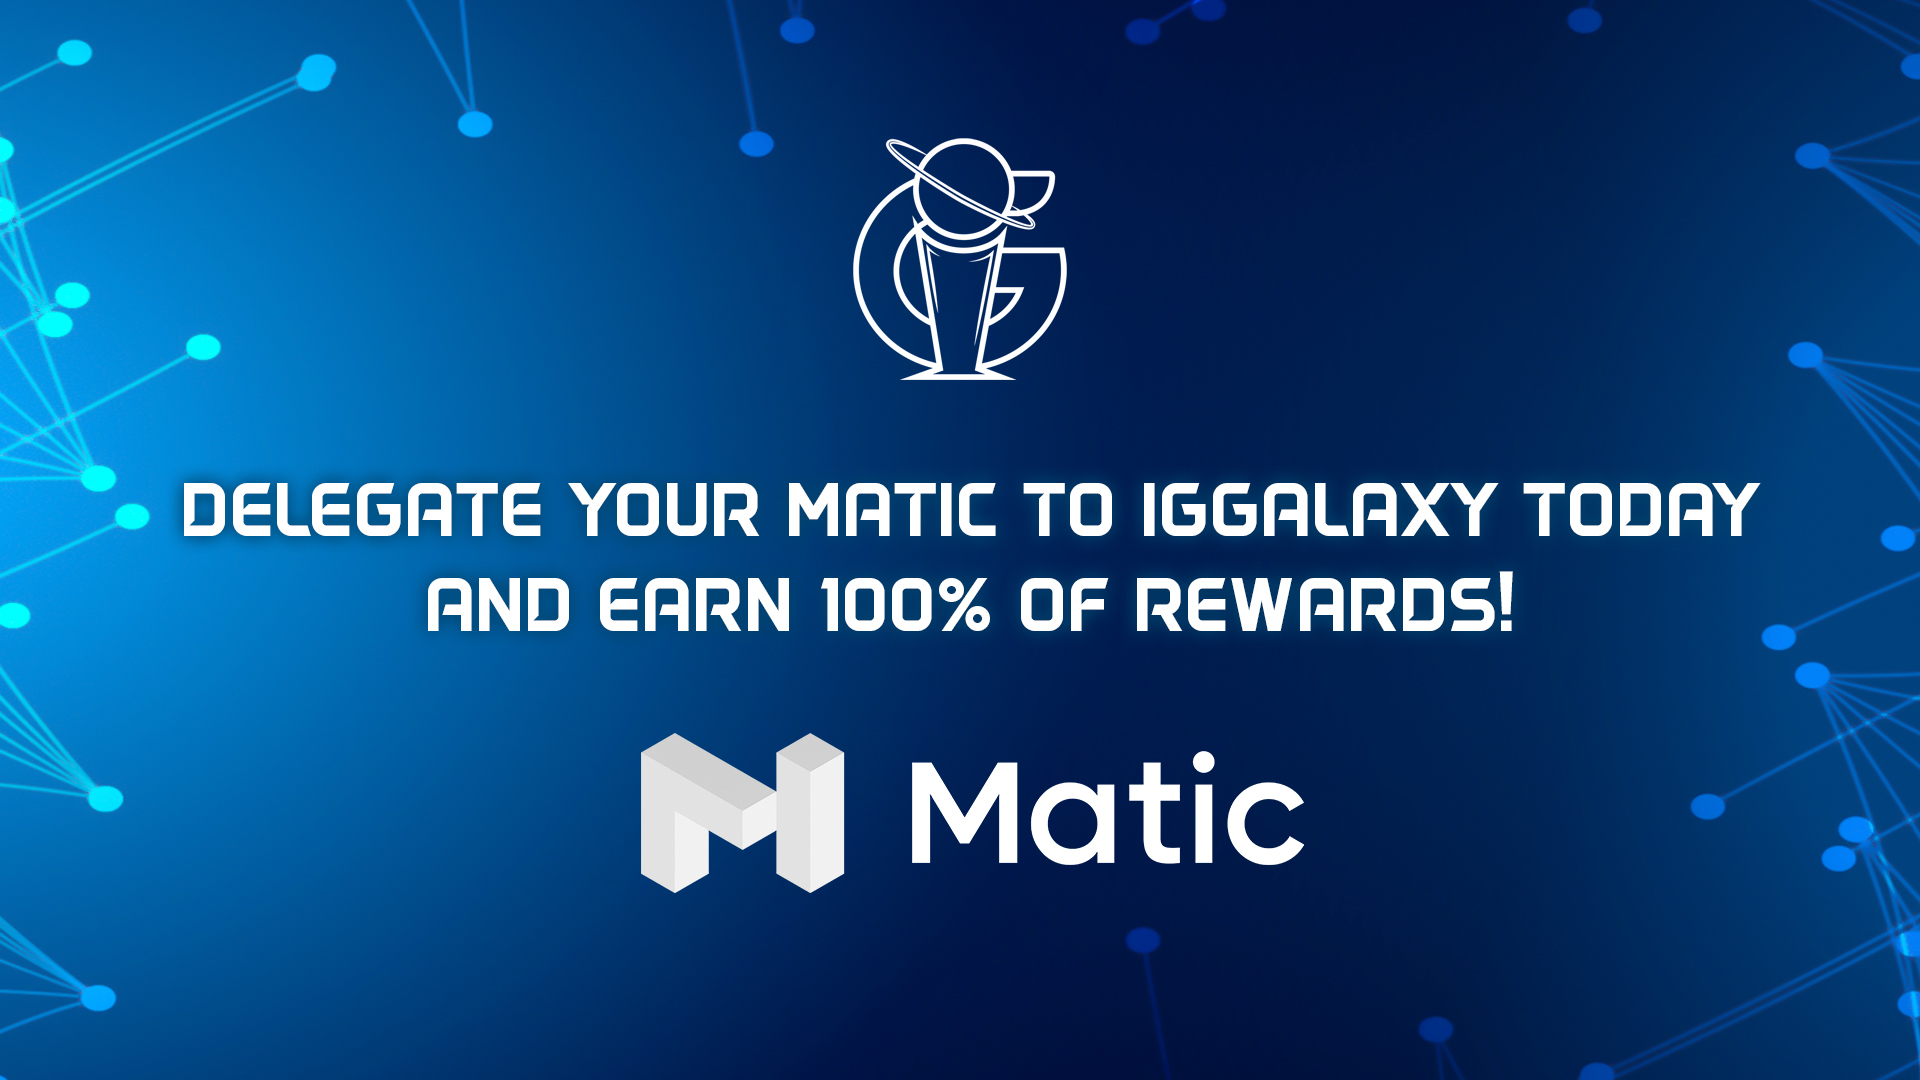 Delegate your MATIC tokens to IGGalaxy for 100% rewards!